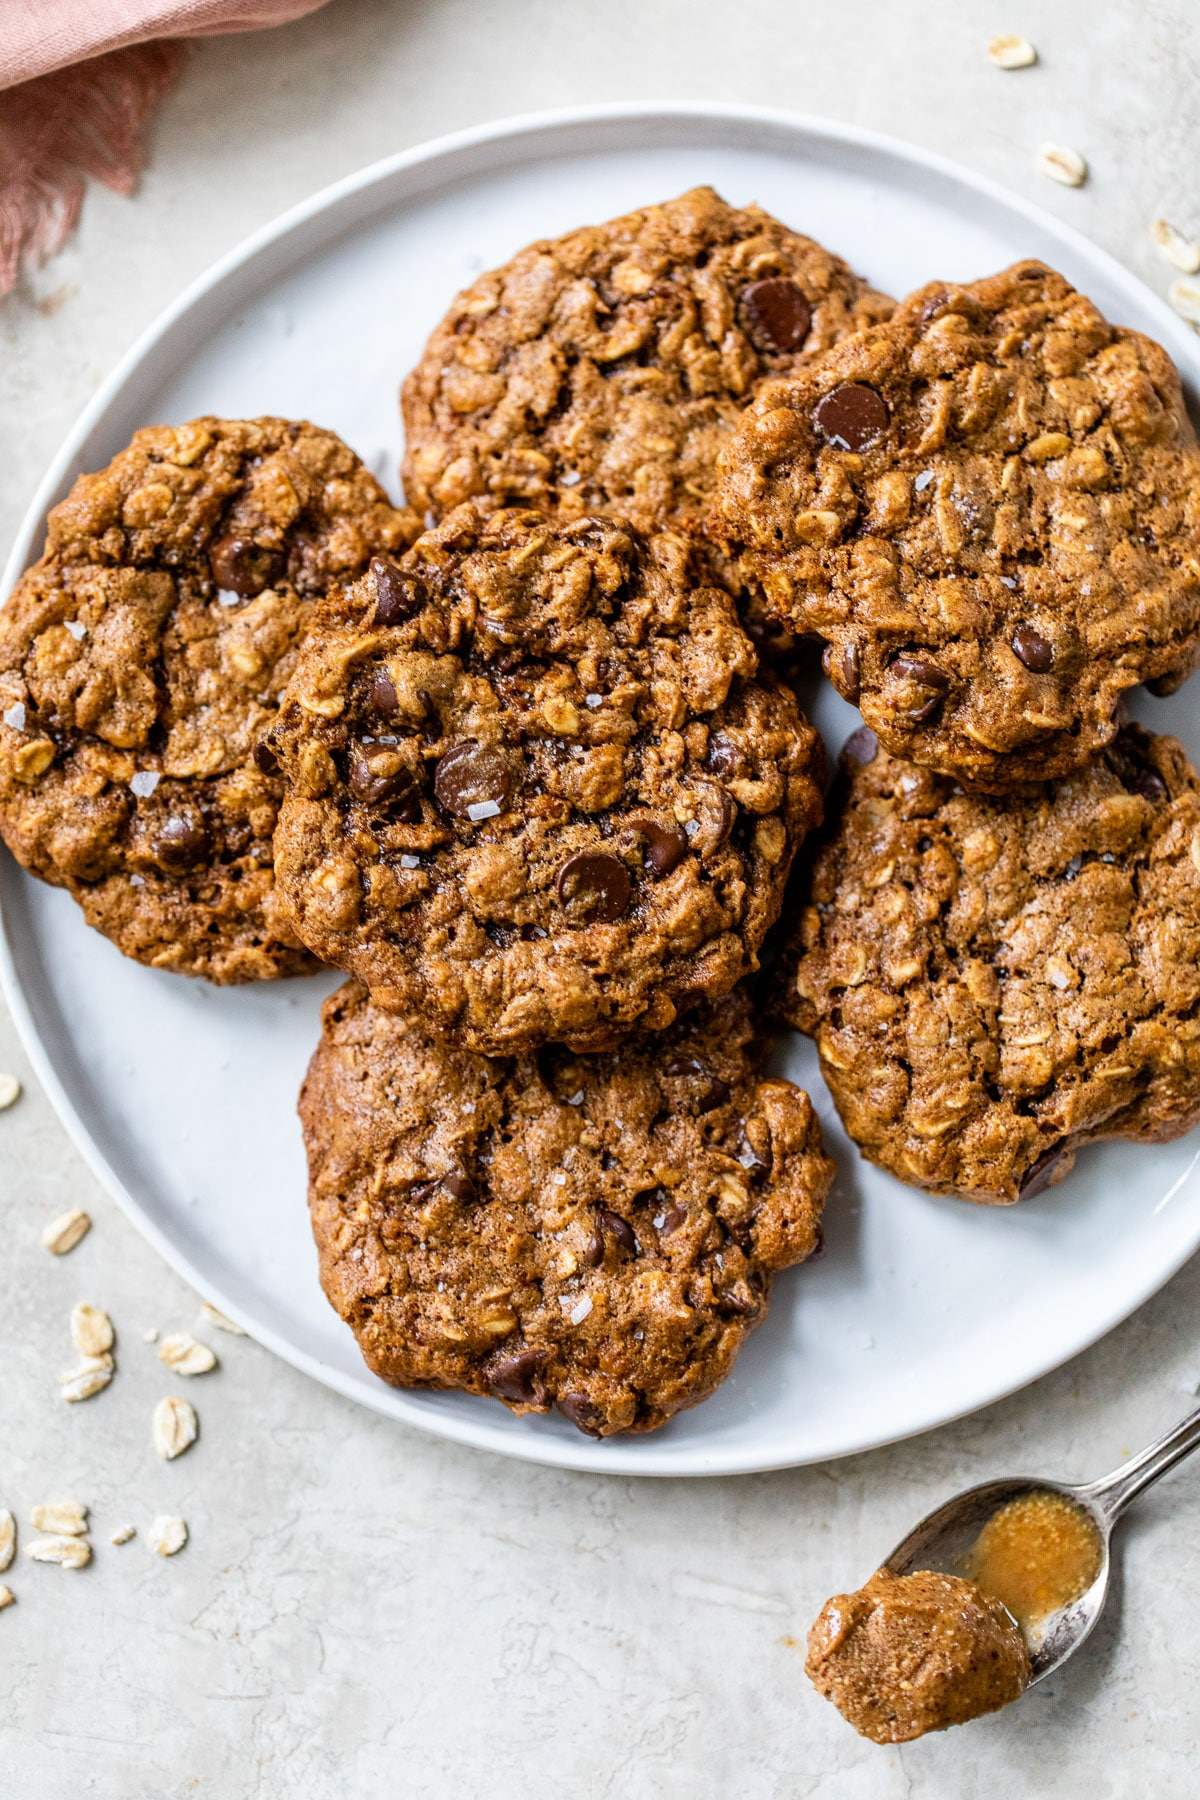 a plate of almond butter oatmeal cookies with chocolate chips